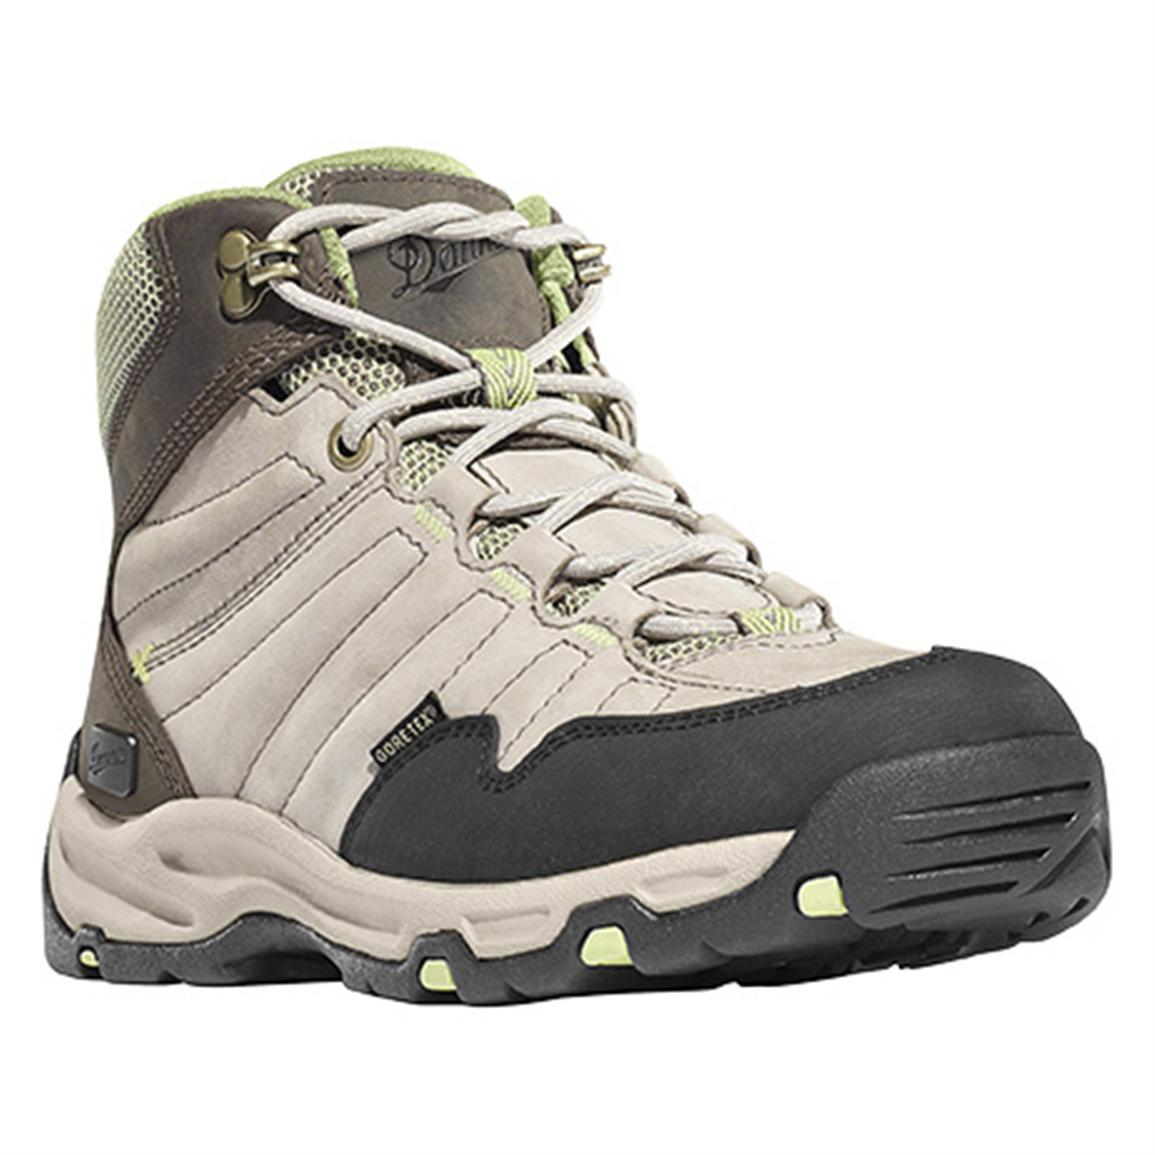 "Women's Danner® 6"" Nobo Mid GORE-TEX® Hiking Boots, Taupe / Green"